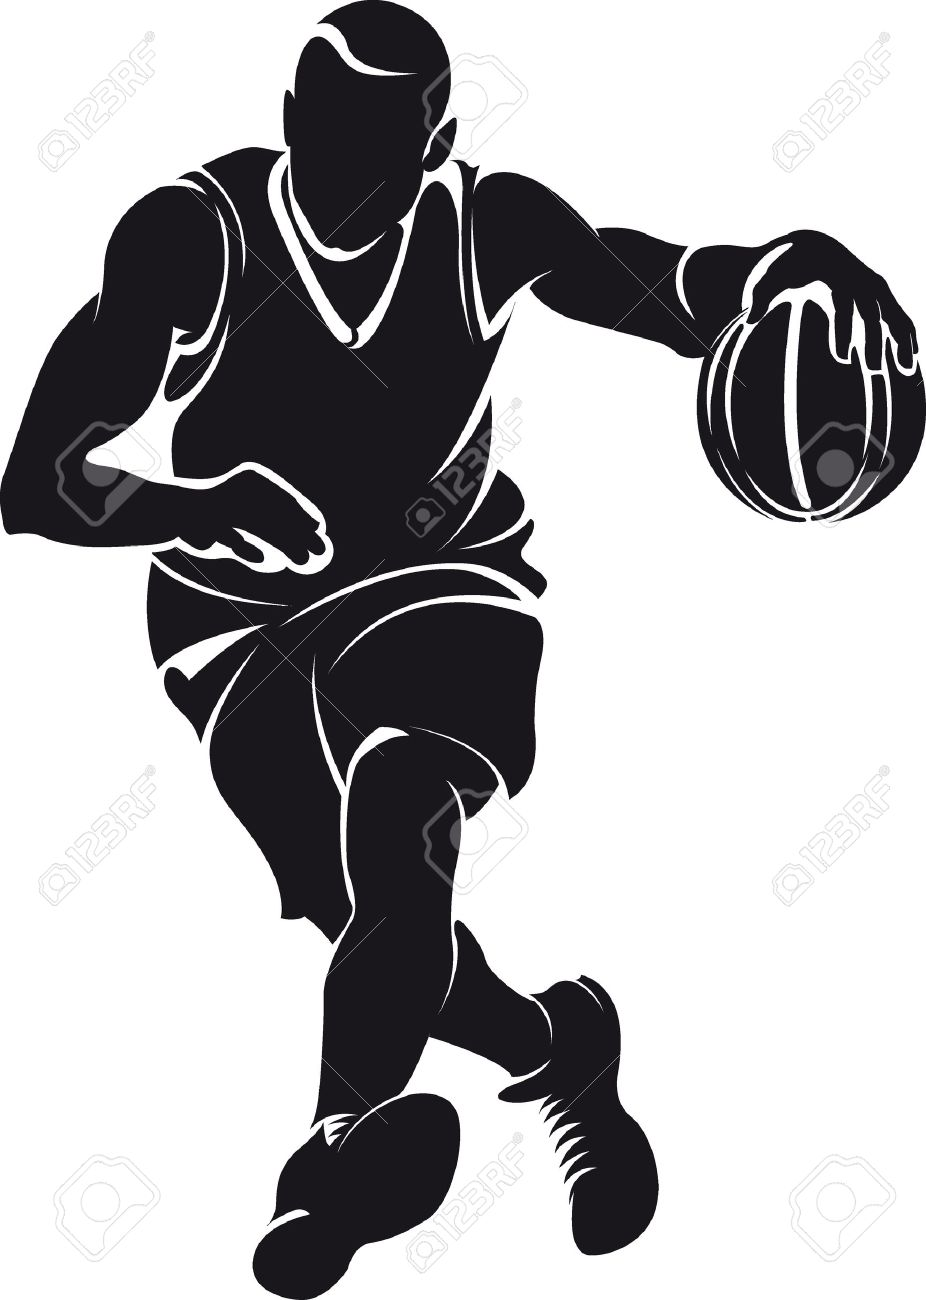 basketball player silhouette stock vector 29865143